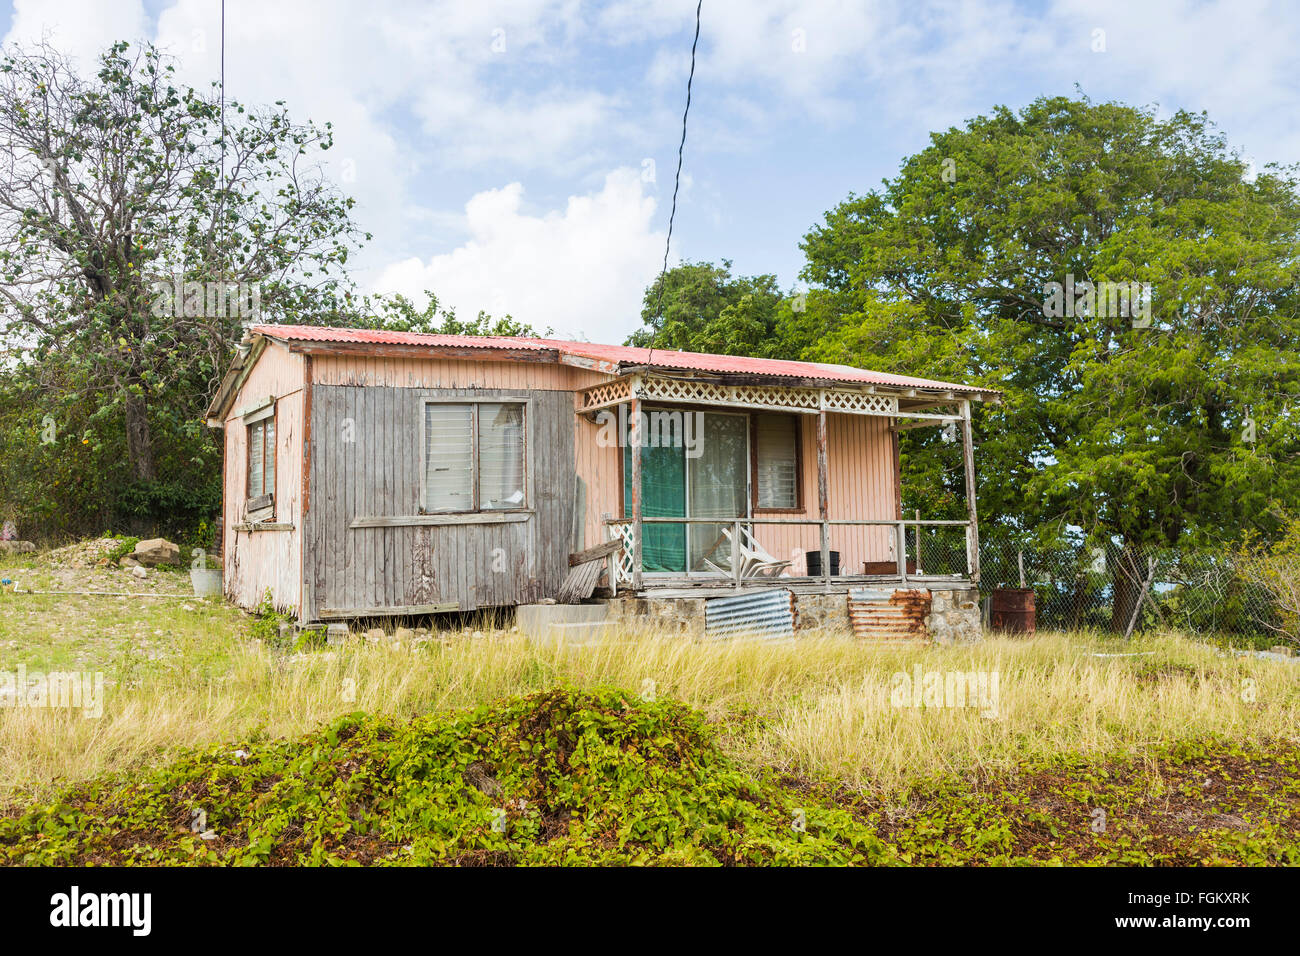 Derelict wooden house near Stingray City in the east of Antigua, Antigua and Barbuda, West Indies - Stock Image